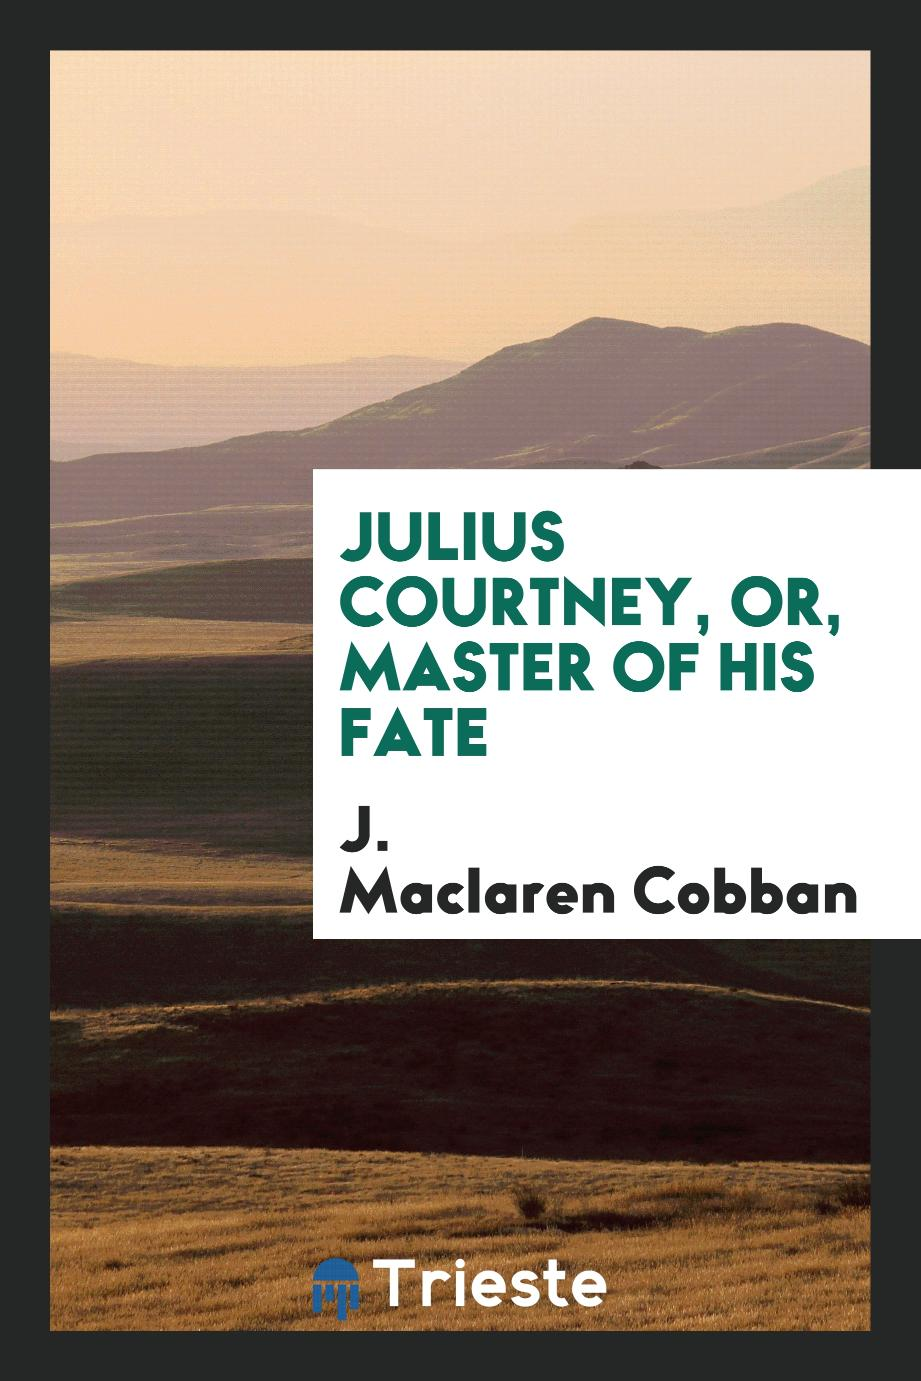 Julius Courtney, or, Master of His Fate